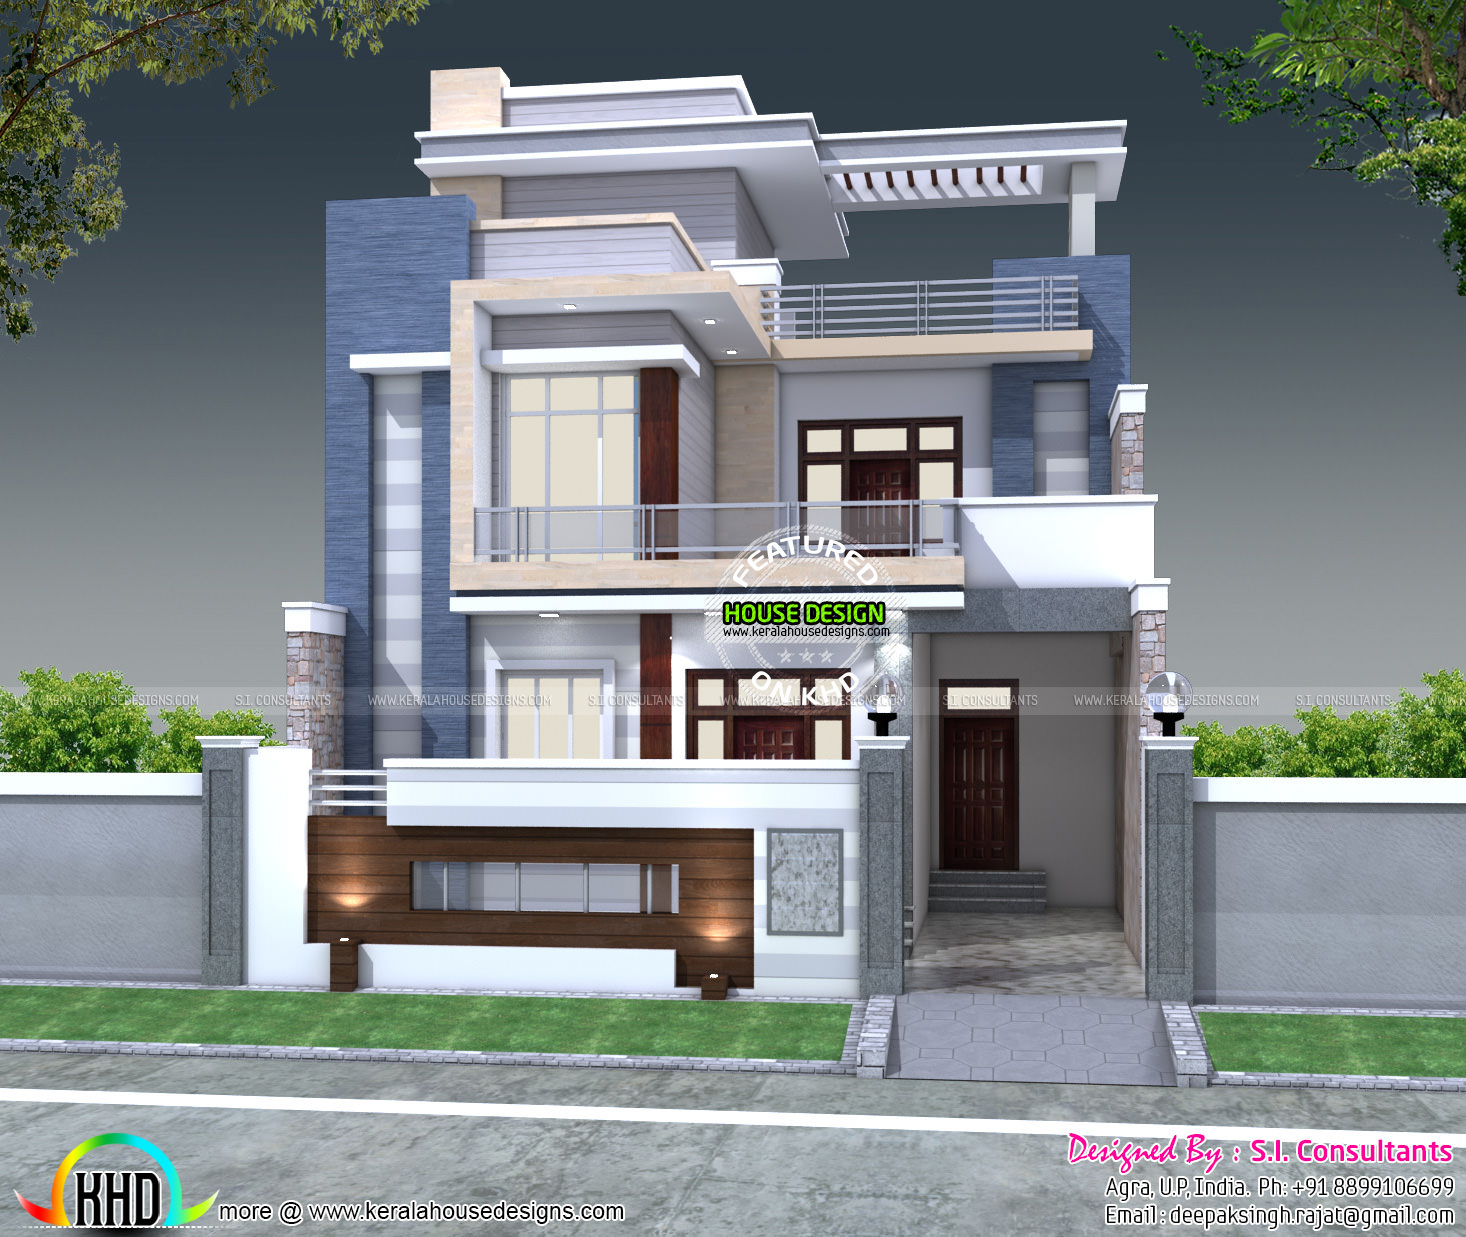 5 bedroom 30x60 house plan architecture kerala home for 1000 sq ft house front elevation